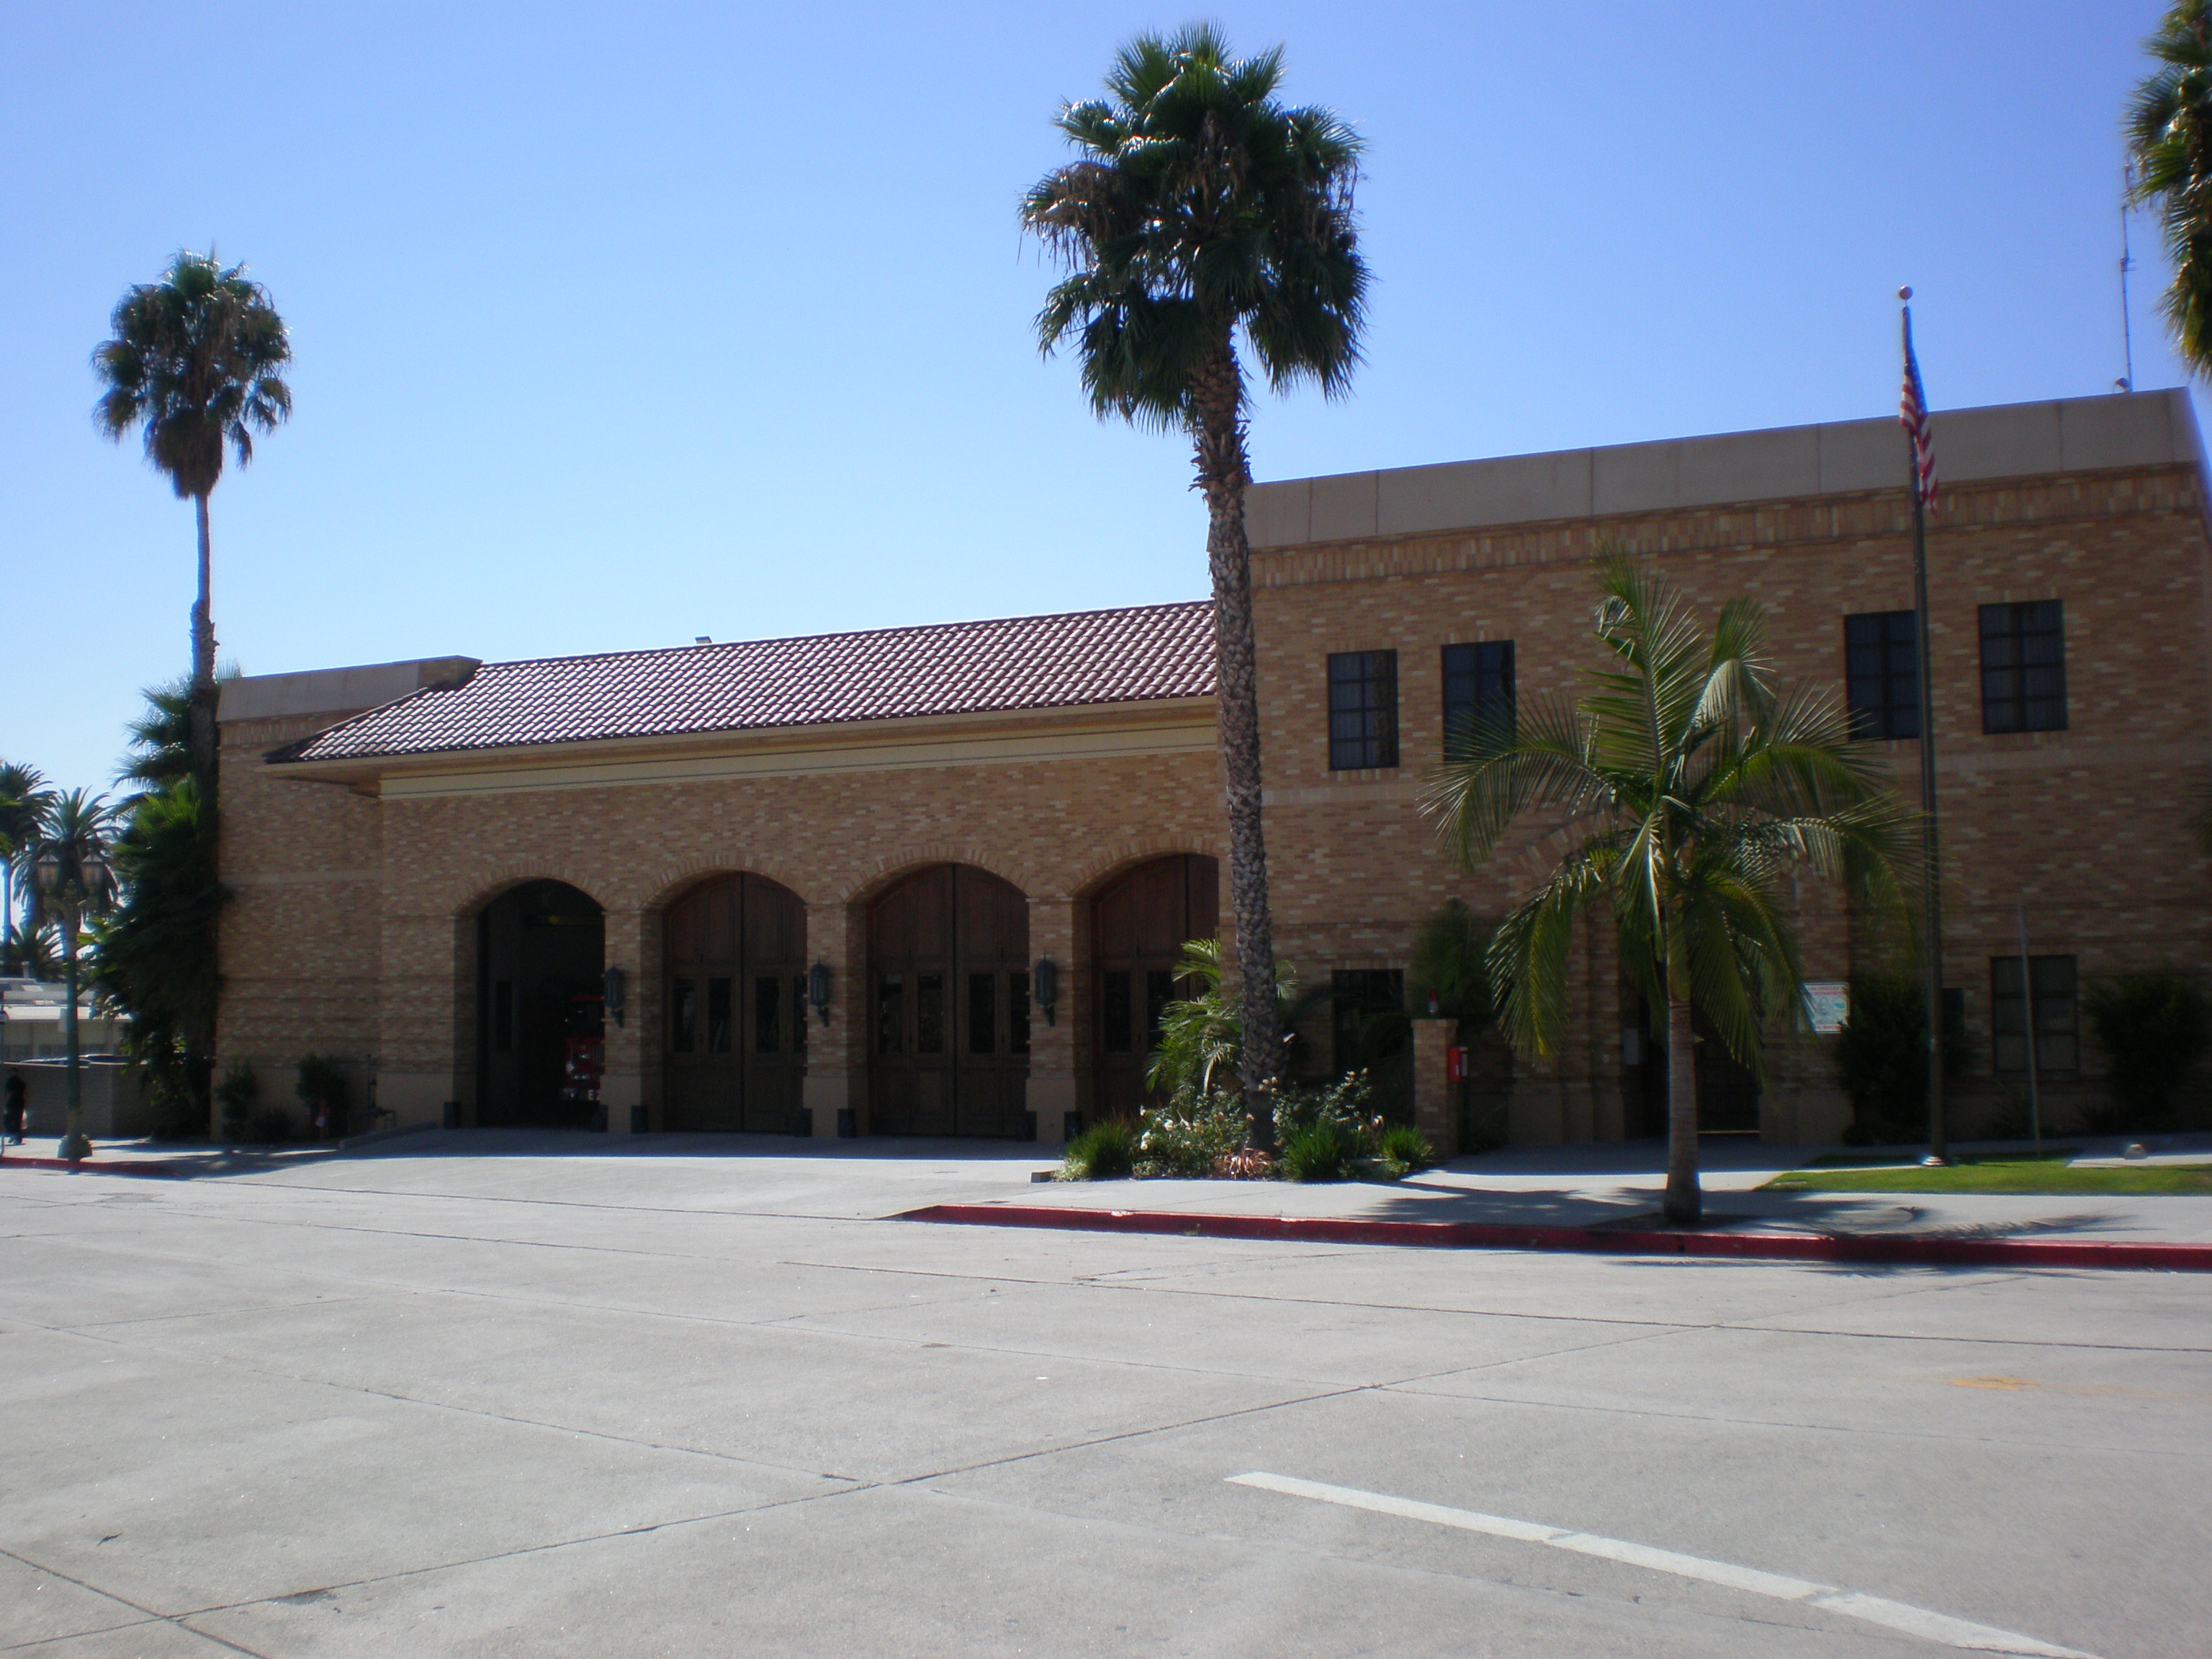 File:LAFD Station - 27 JPG - Wikimedia Commons